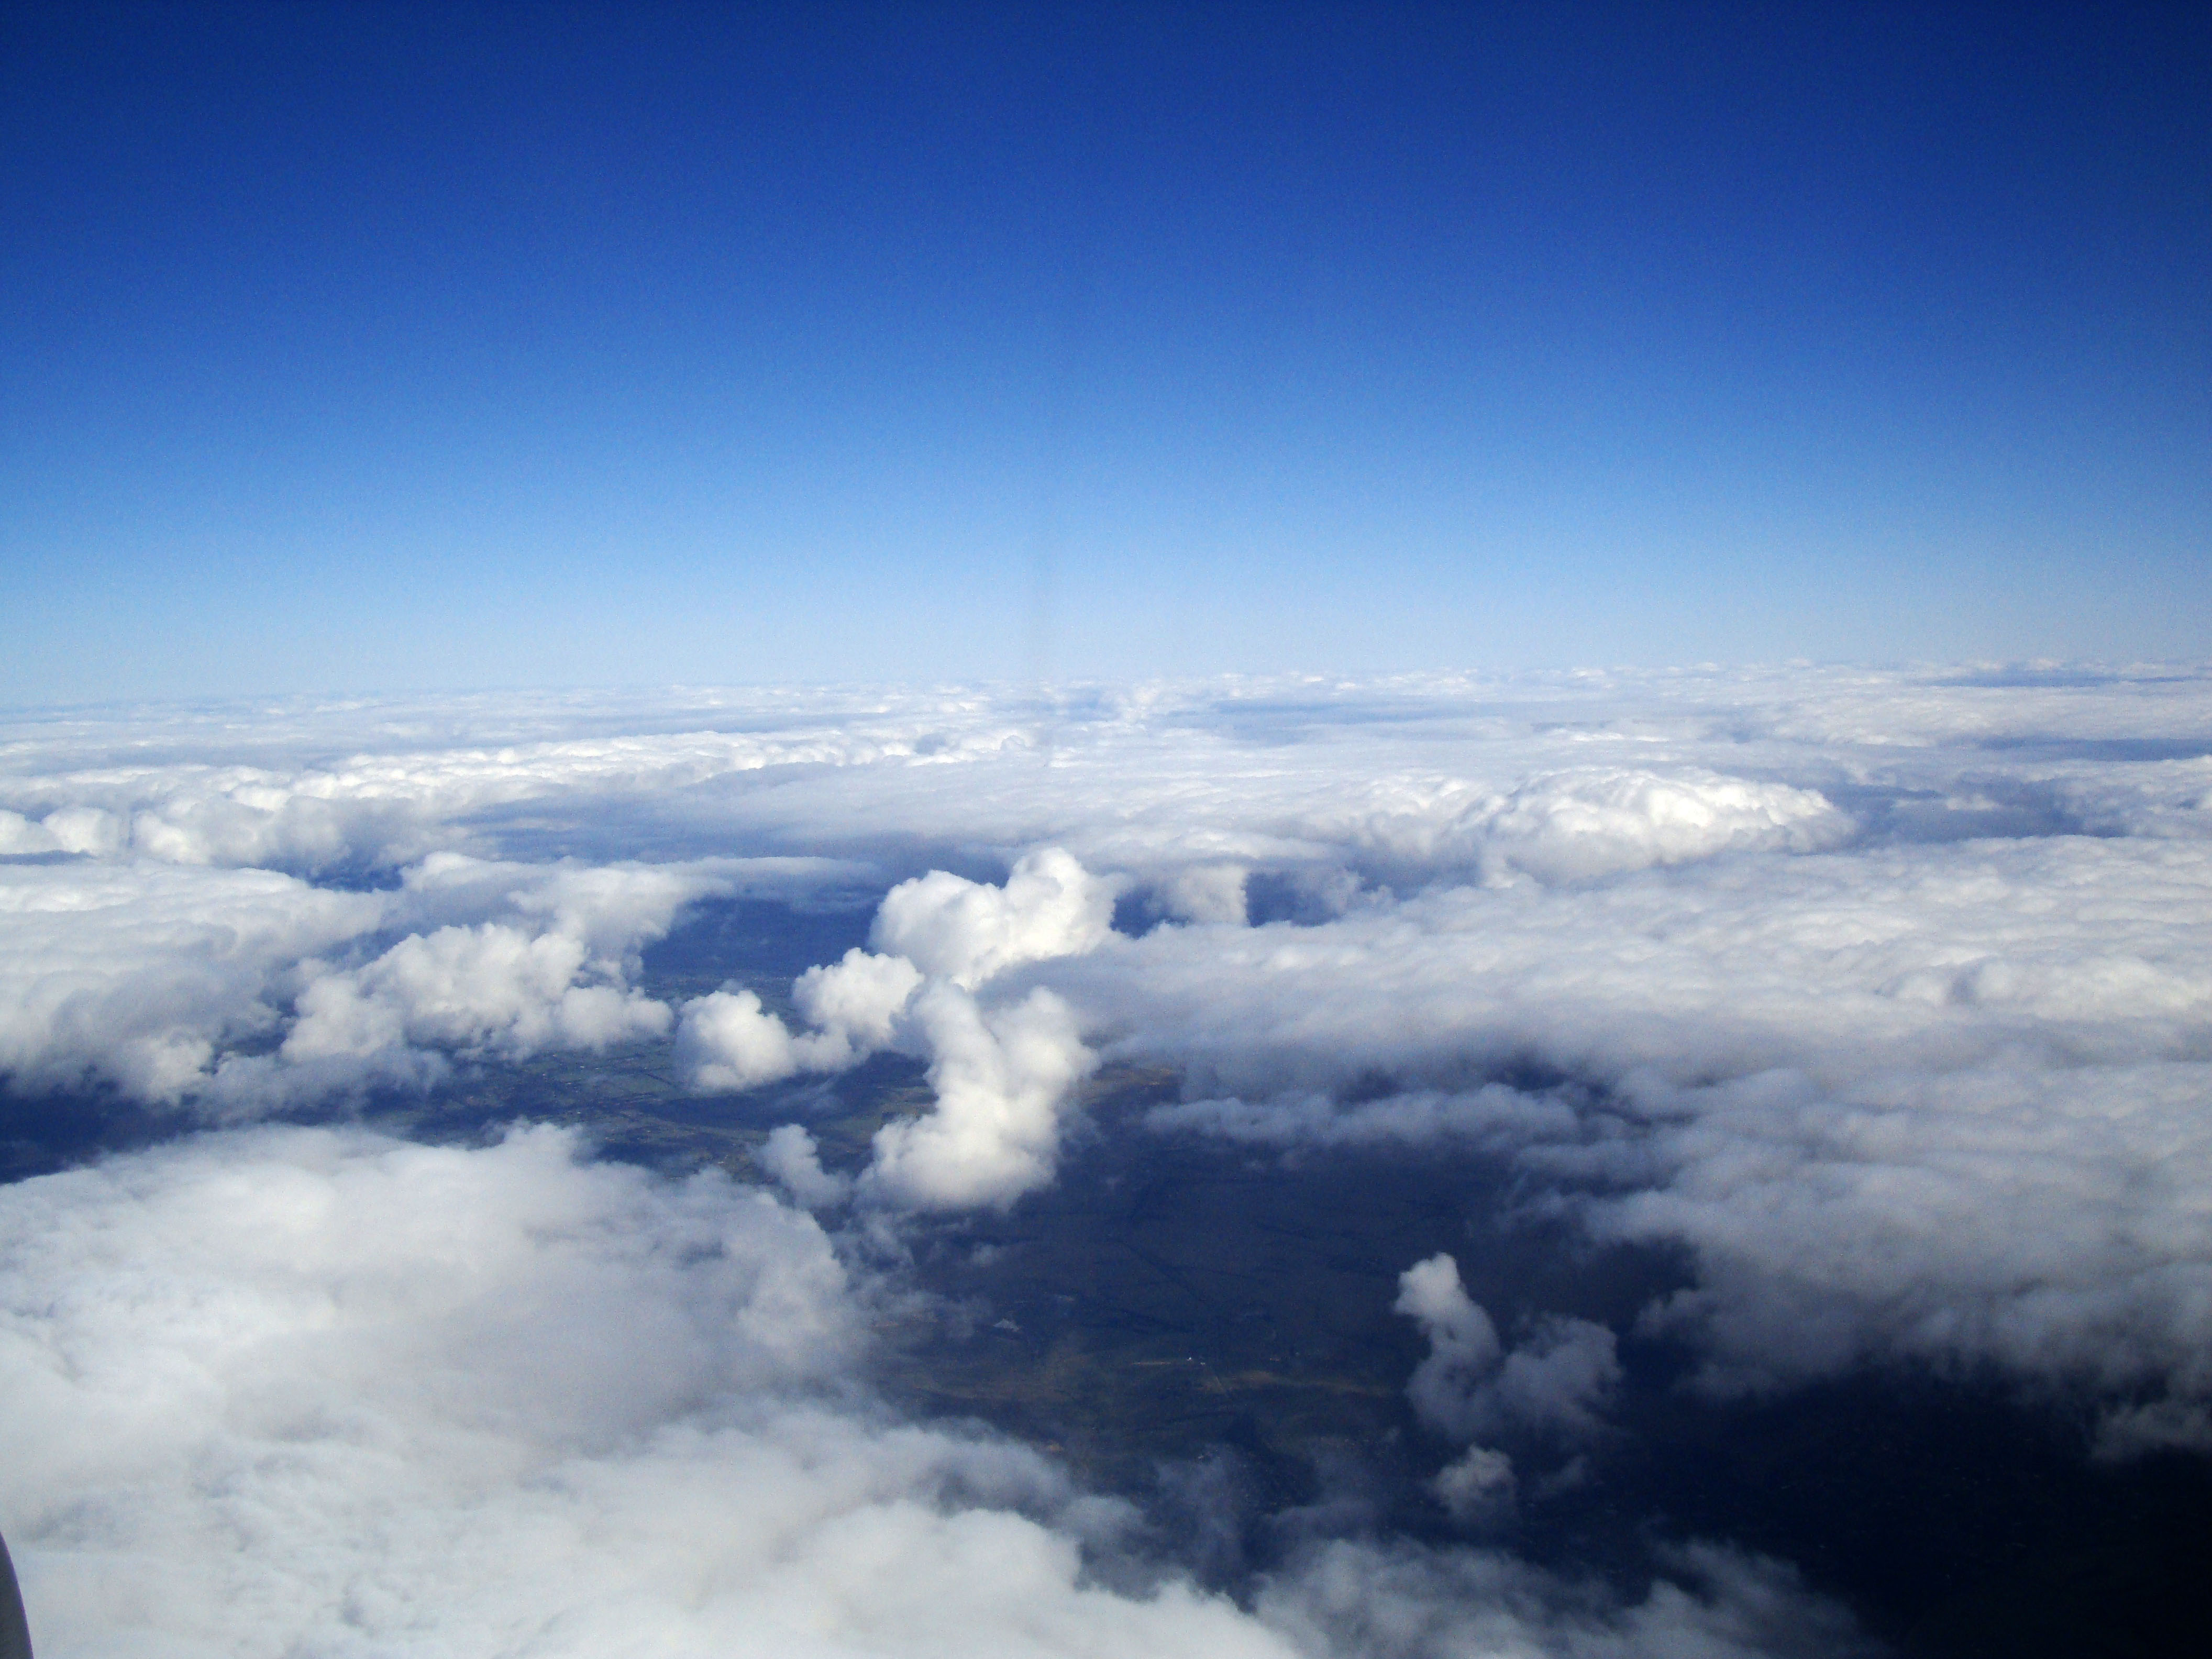 Textures Clouds Formations Sky Storms Weather Phenomena Aerial Views 03